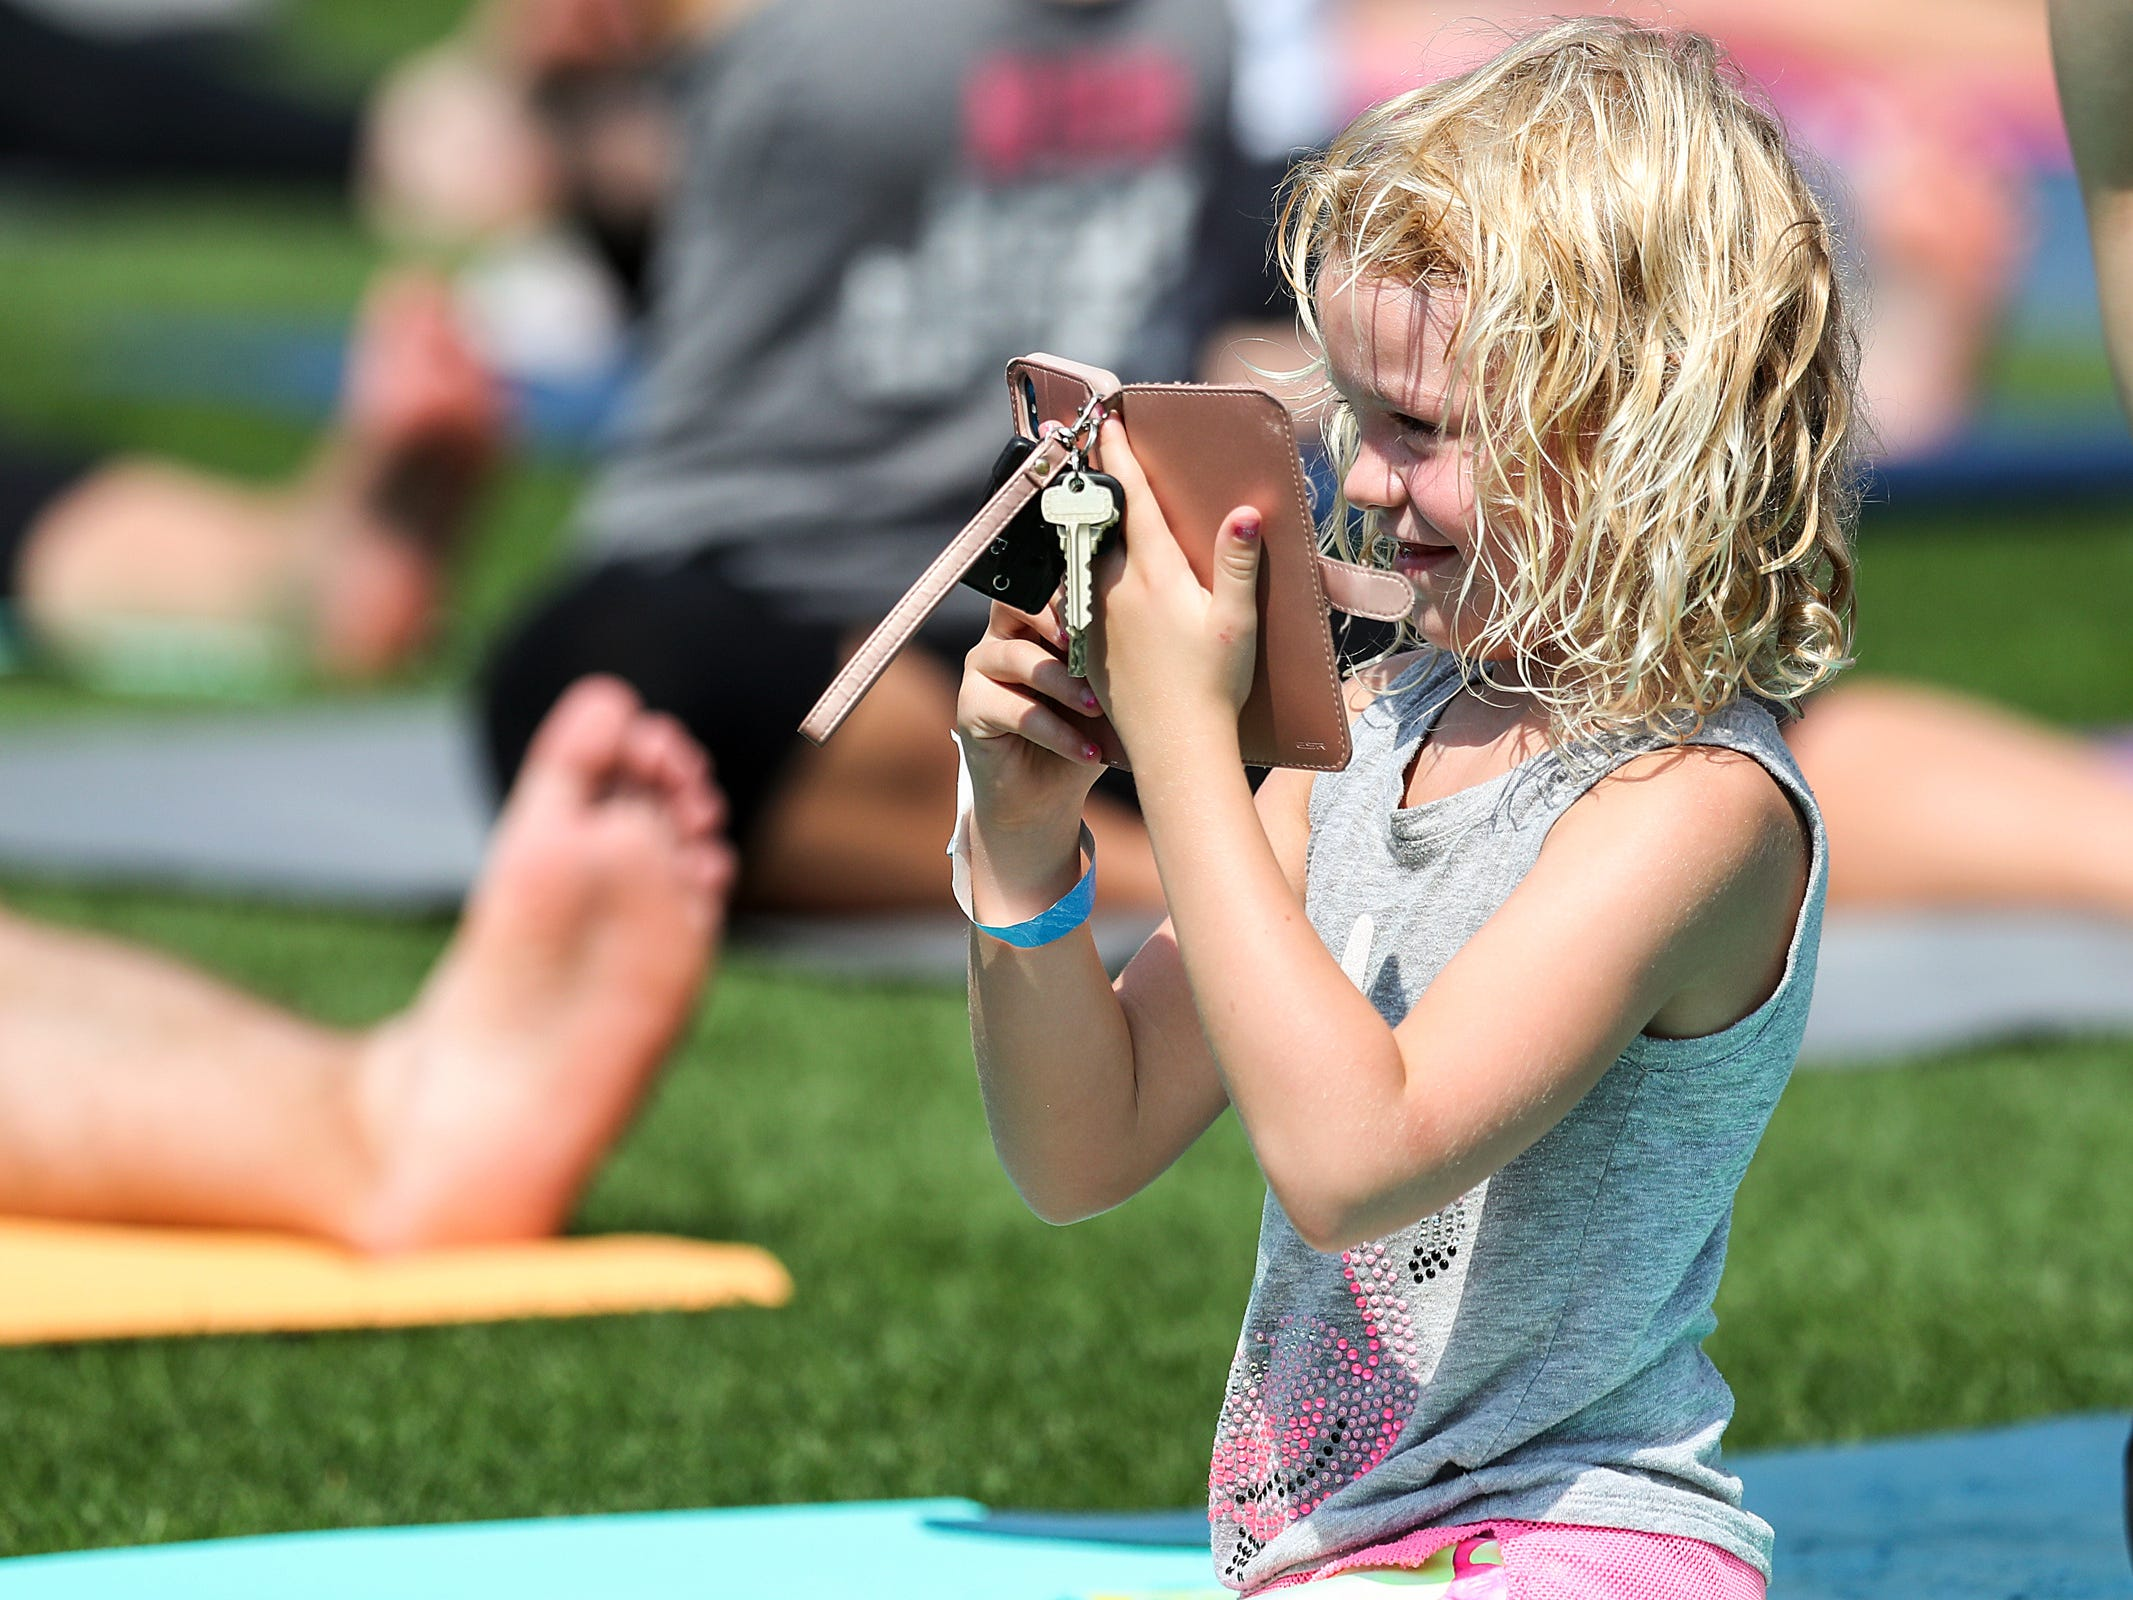 A young one takes photos as yogis practice vinyasa flow during Yoga in the Outfield at Victory Field in Indianapolis, Sunday, Aug. 12, 2018.